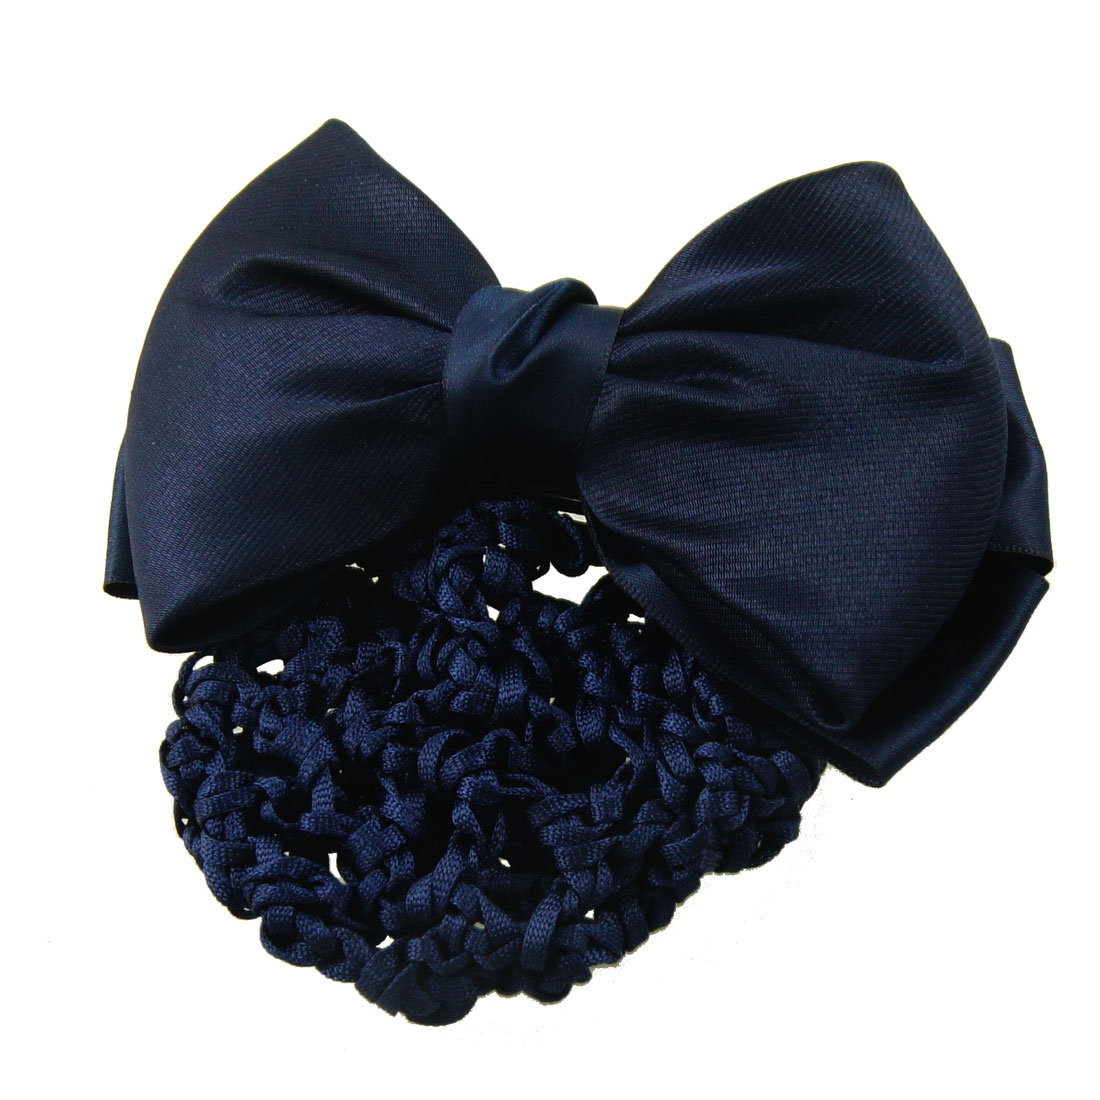 Blue Nylon Polyester Bowknot Barrette Hair Clip w Snood Net